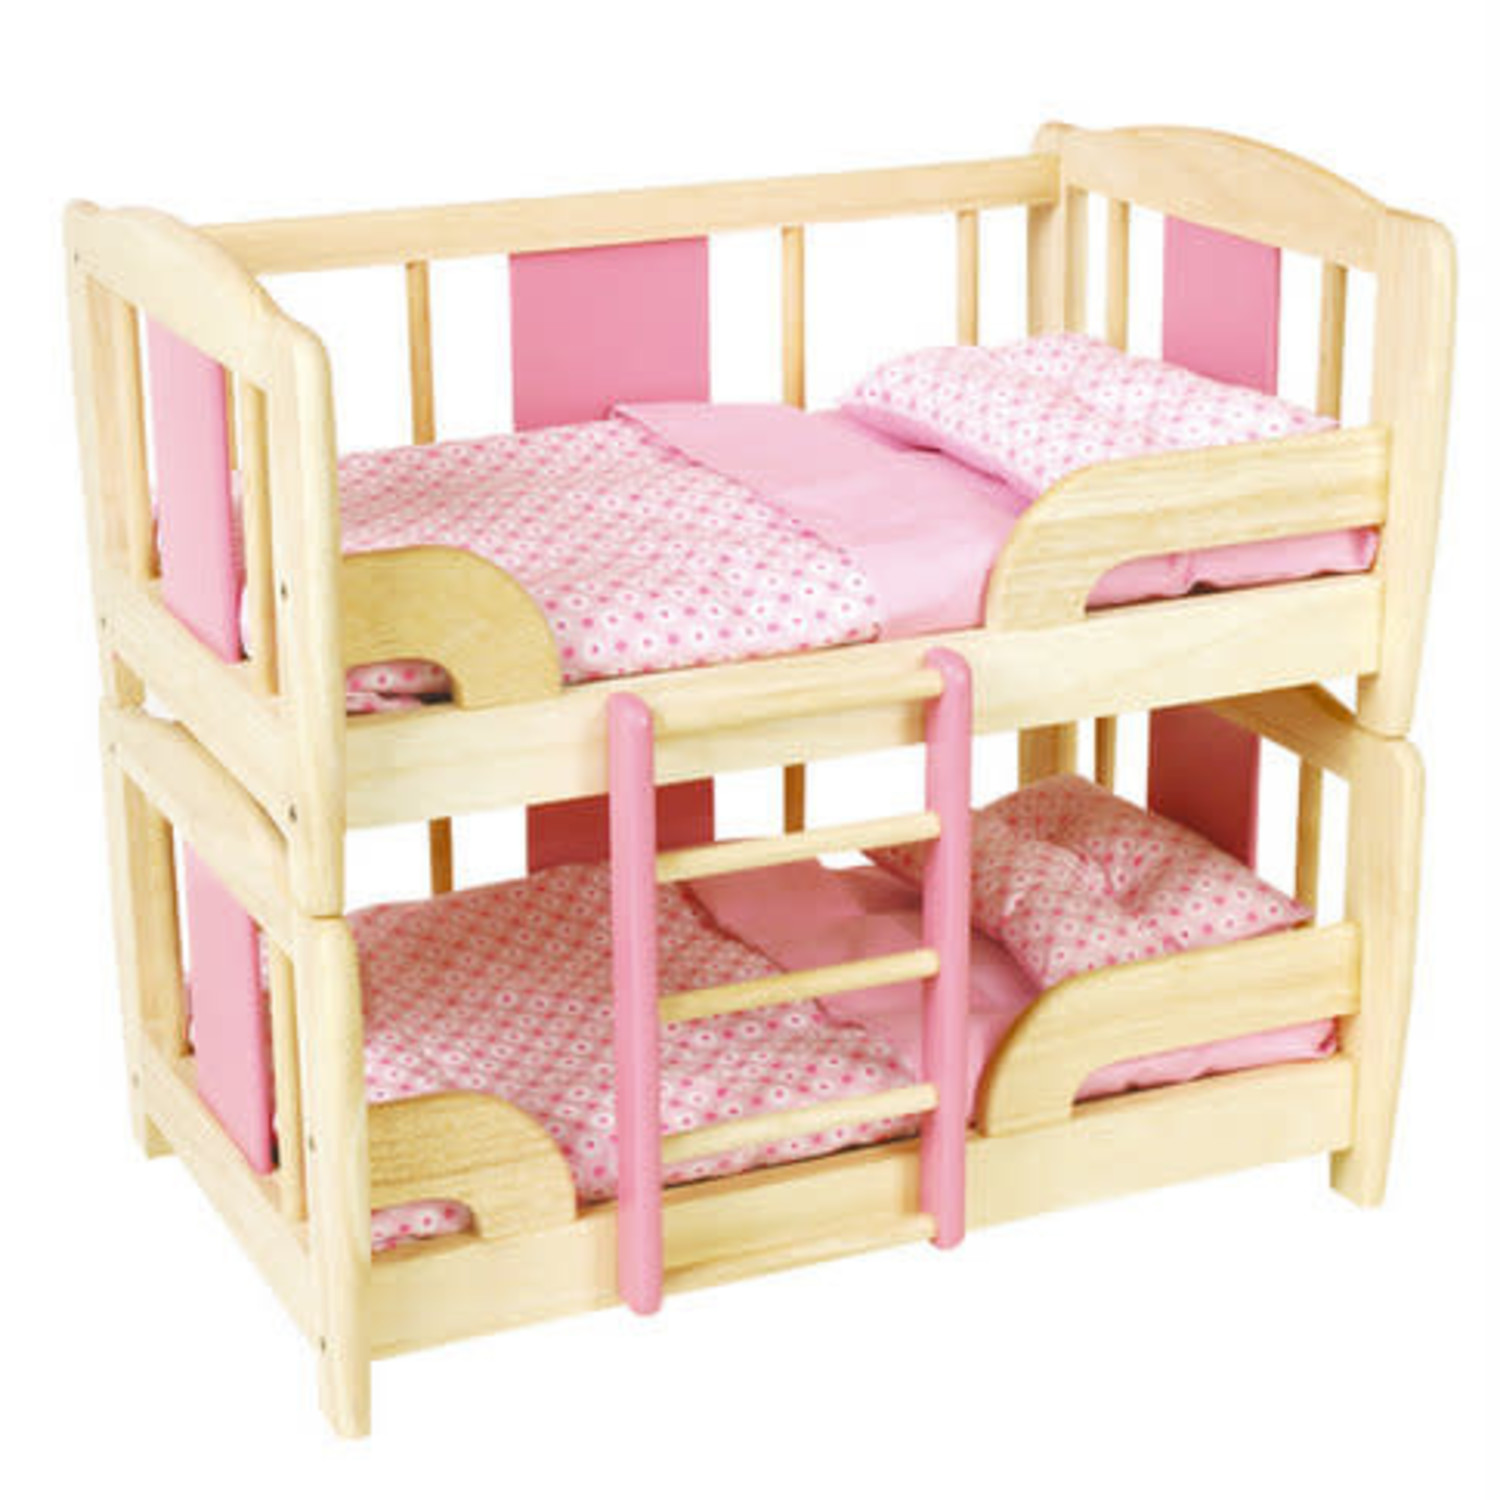 Pintoy Dolls Bunk Bed Hurley Burley Toys